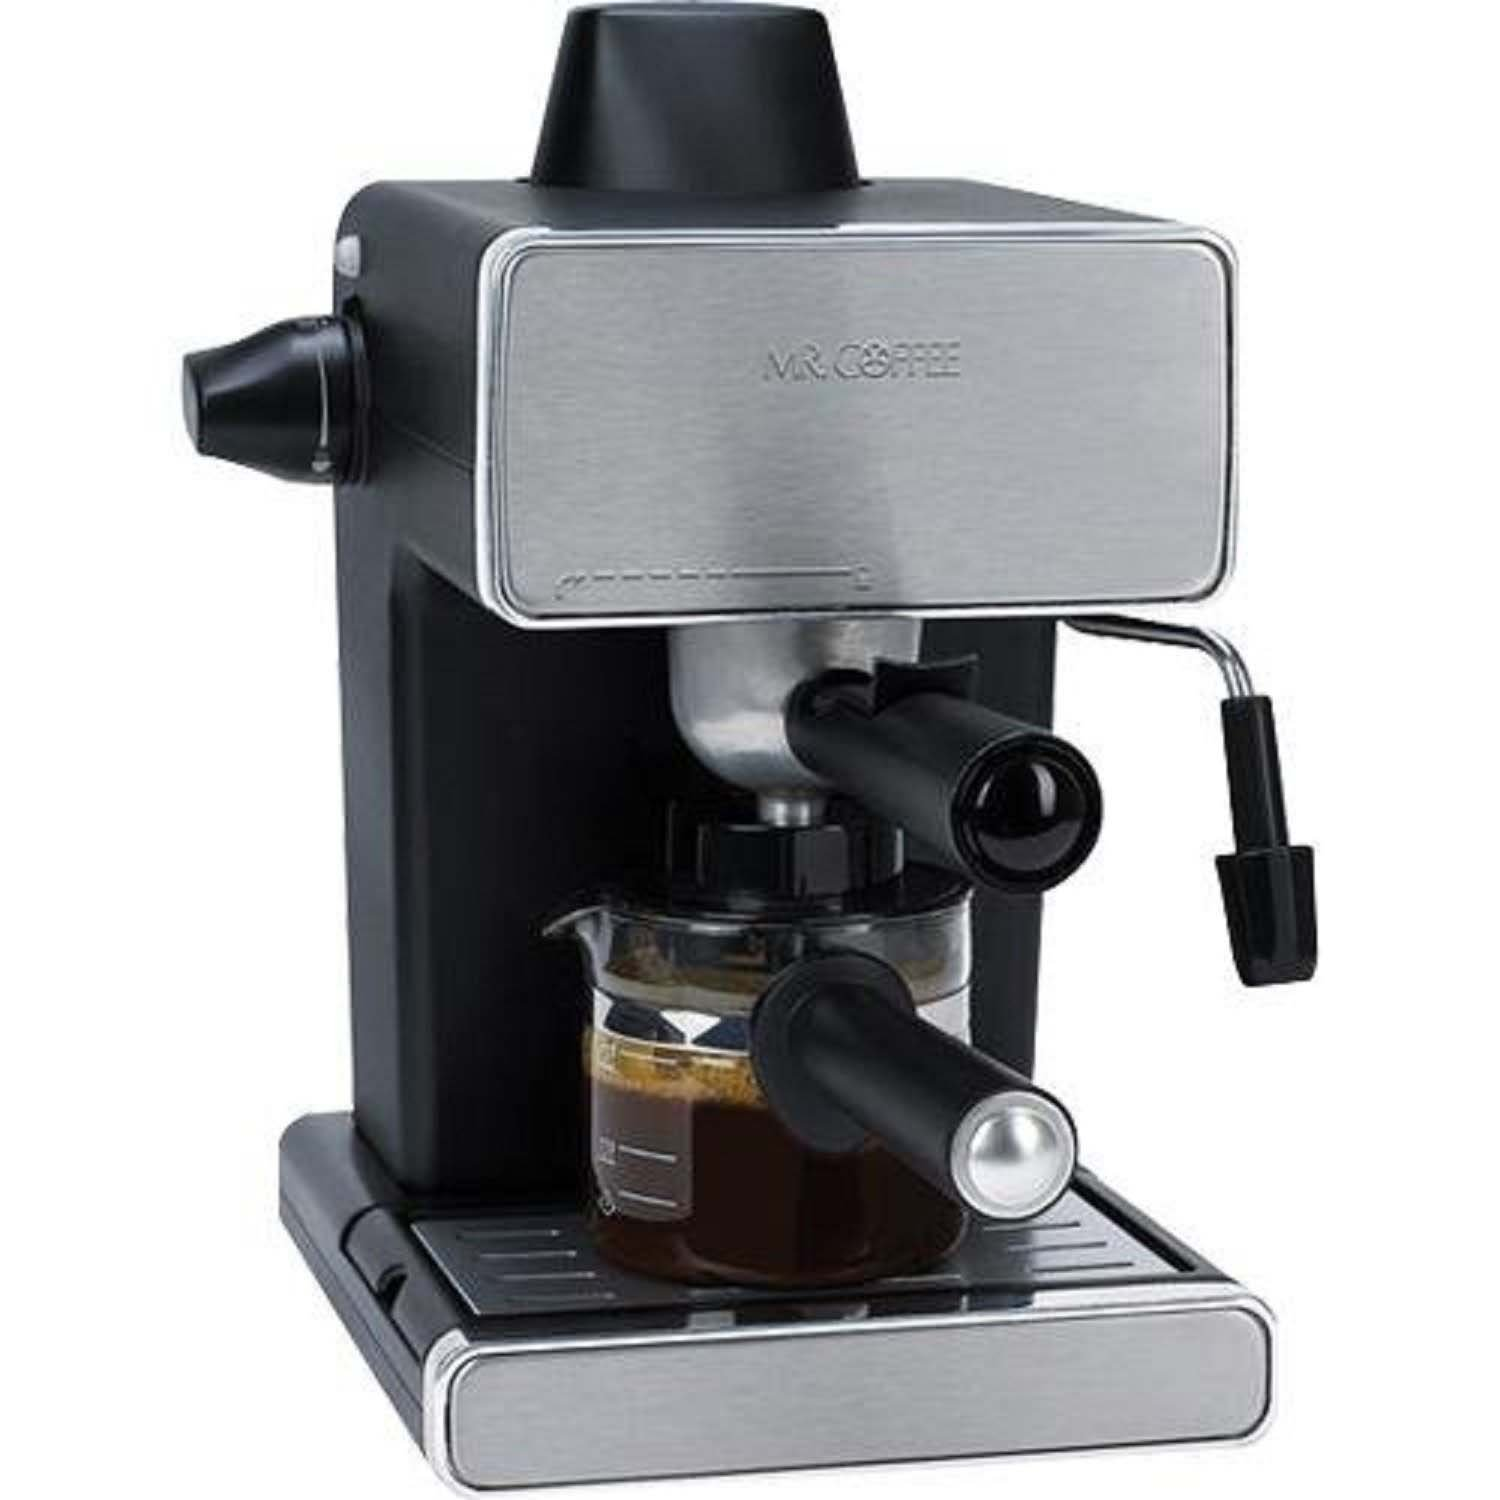 Mr. Coffee BVMC-ECM260-RB-1 Steam Espresso and Cappuccino Maker, Black by Mr. Coffee